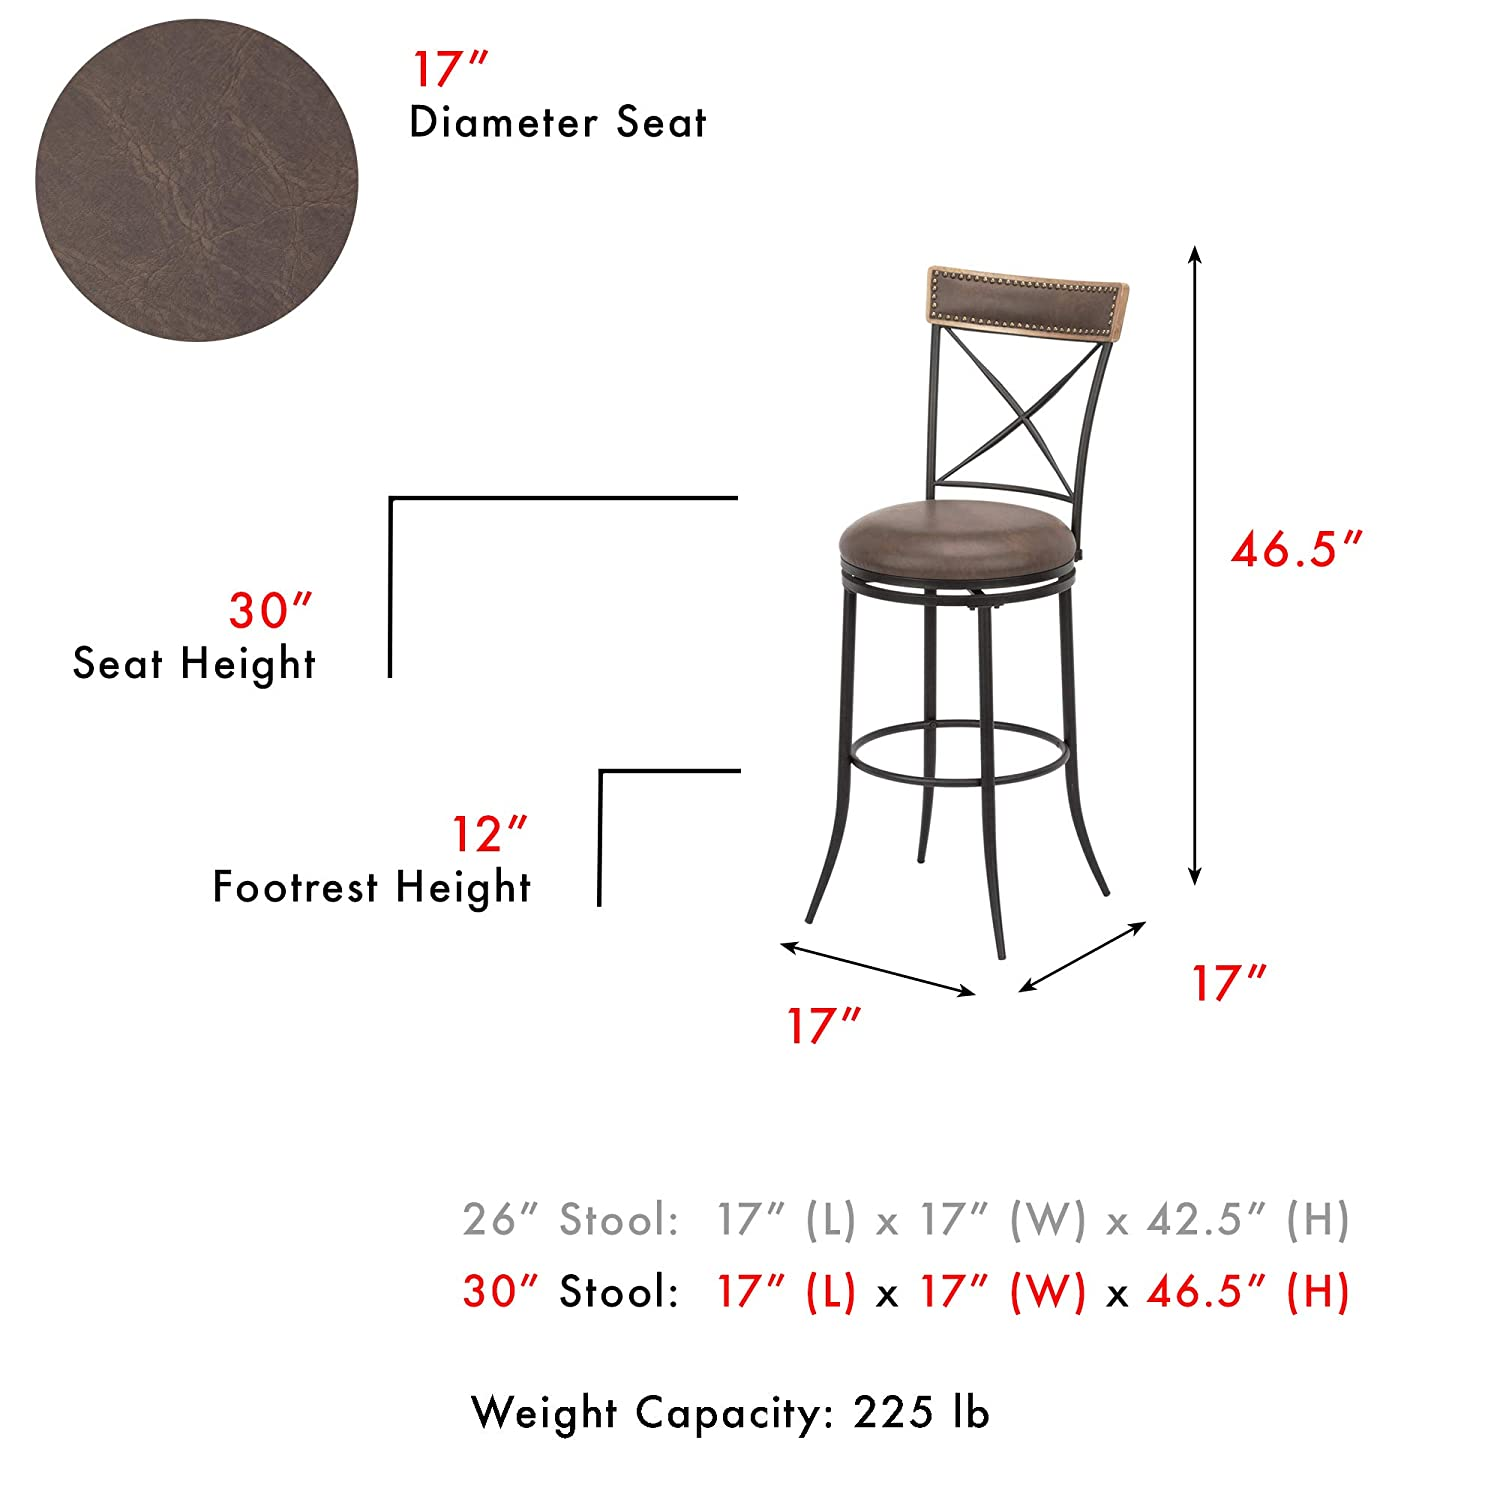 Leggett Platt Boise Swivel Seat Bar Stool with Charcoal Finished Metal Frame, Wood Stain Seatback and Cocoa Faux Leather Upholstery, 30-Inch Seat Height